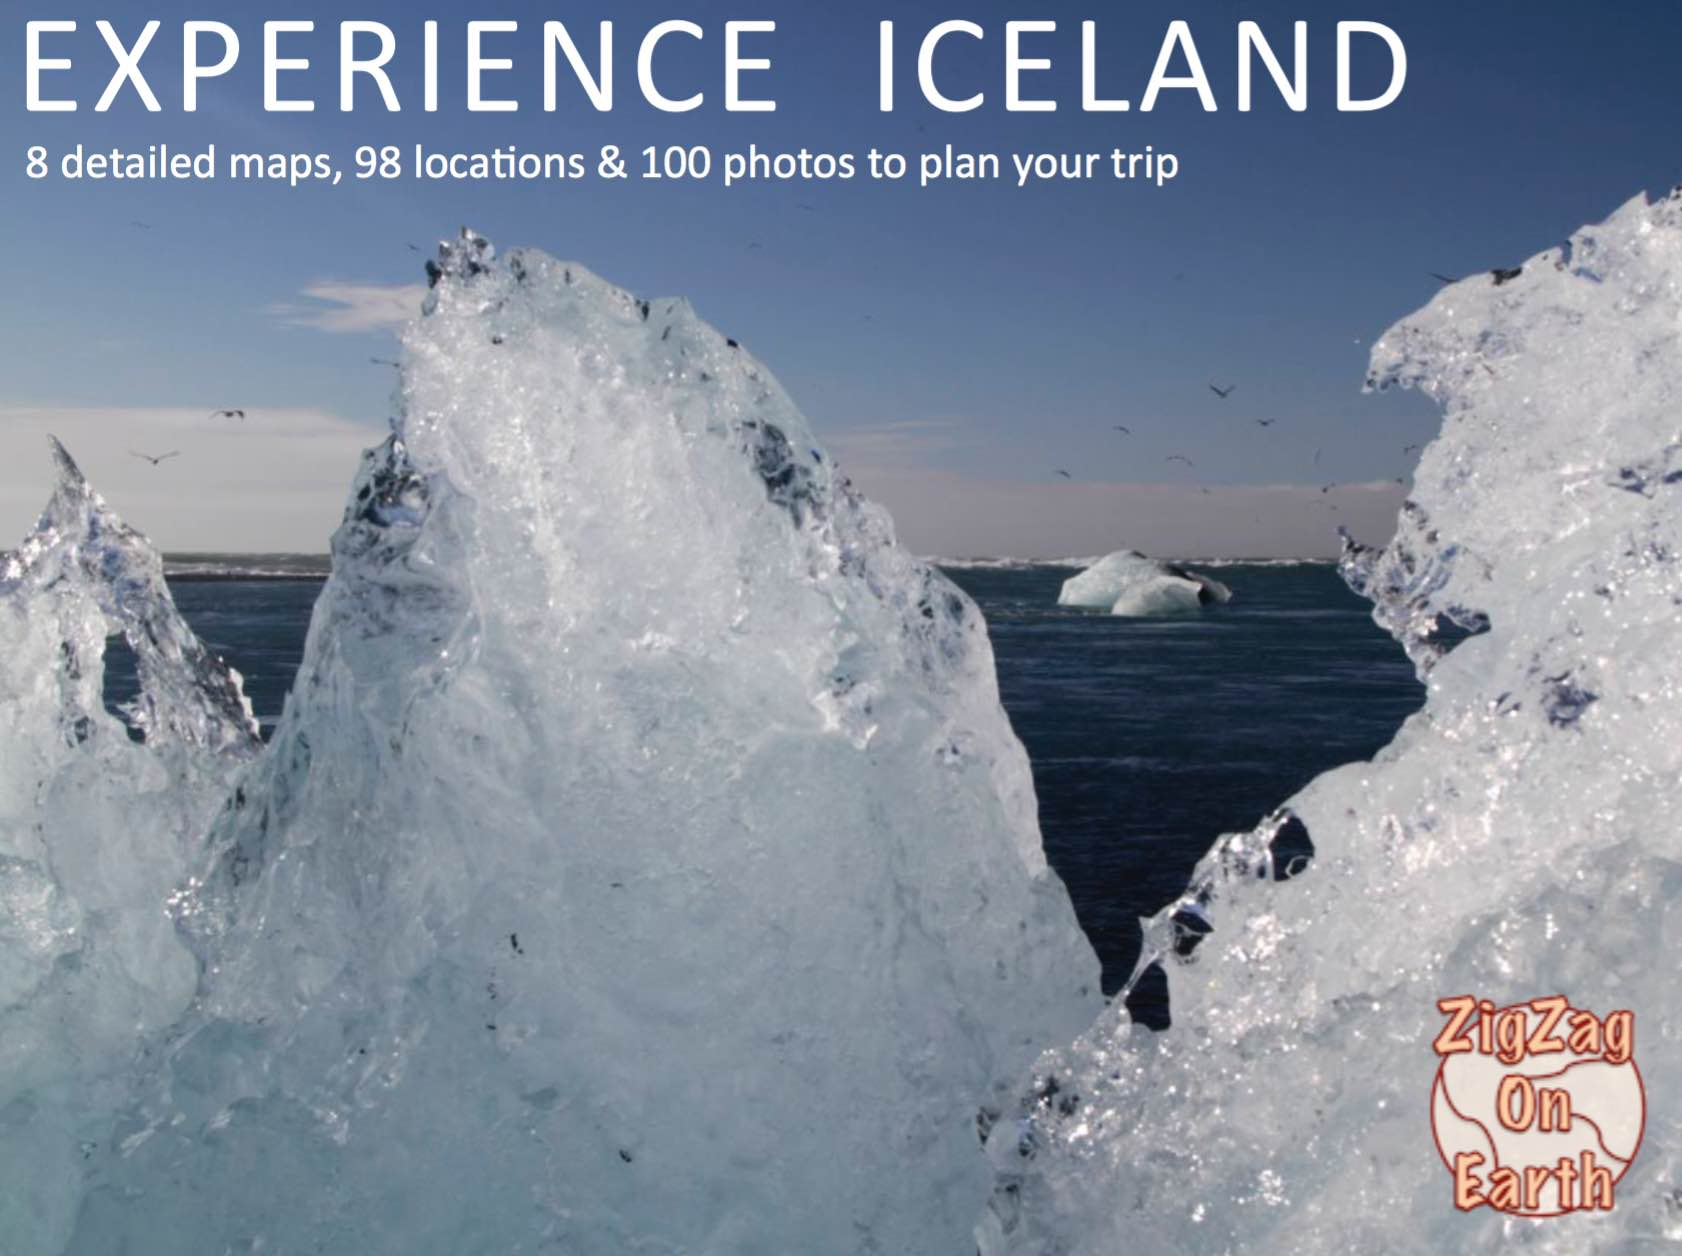 Experience Iceland Travel Guide eBook cover